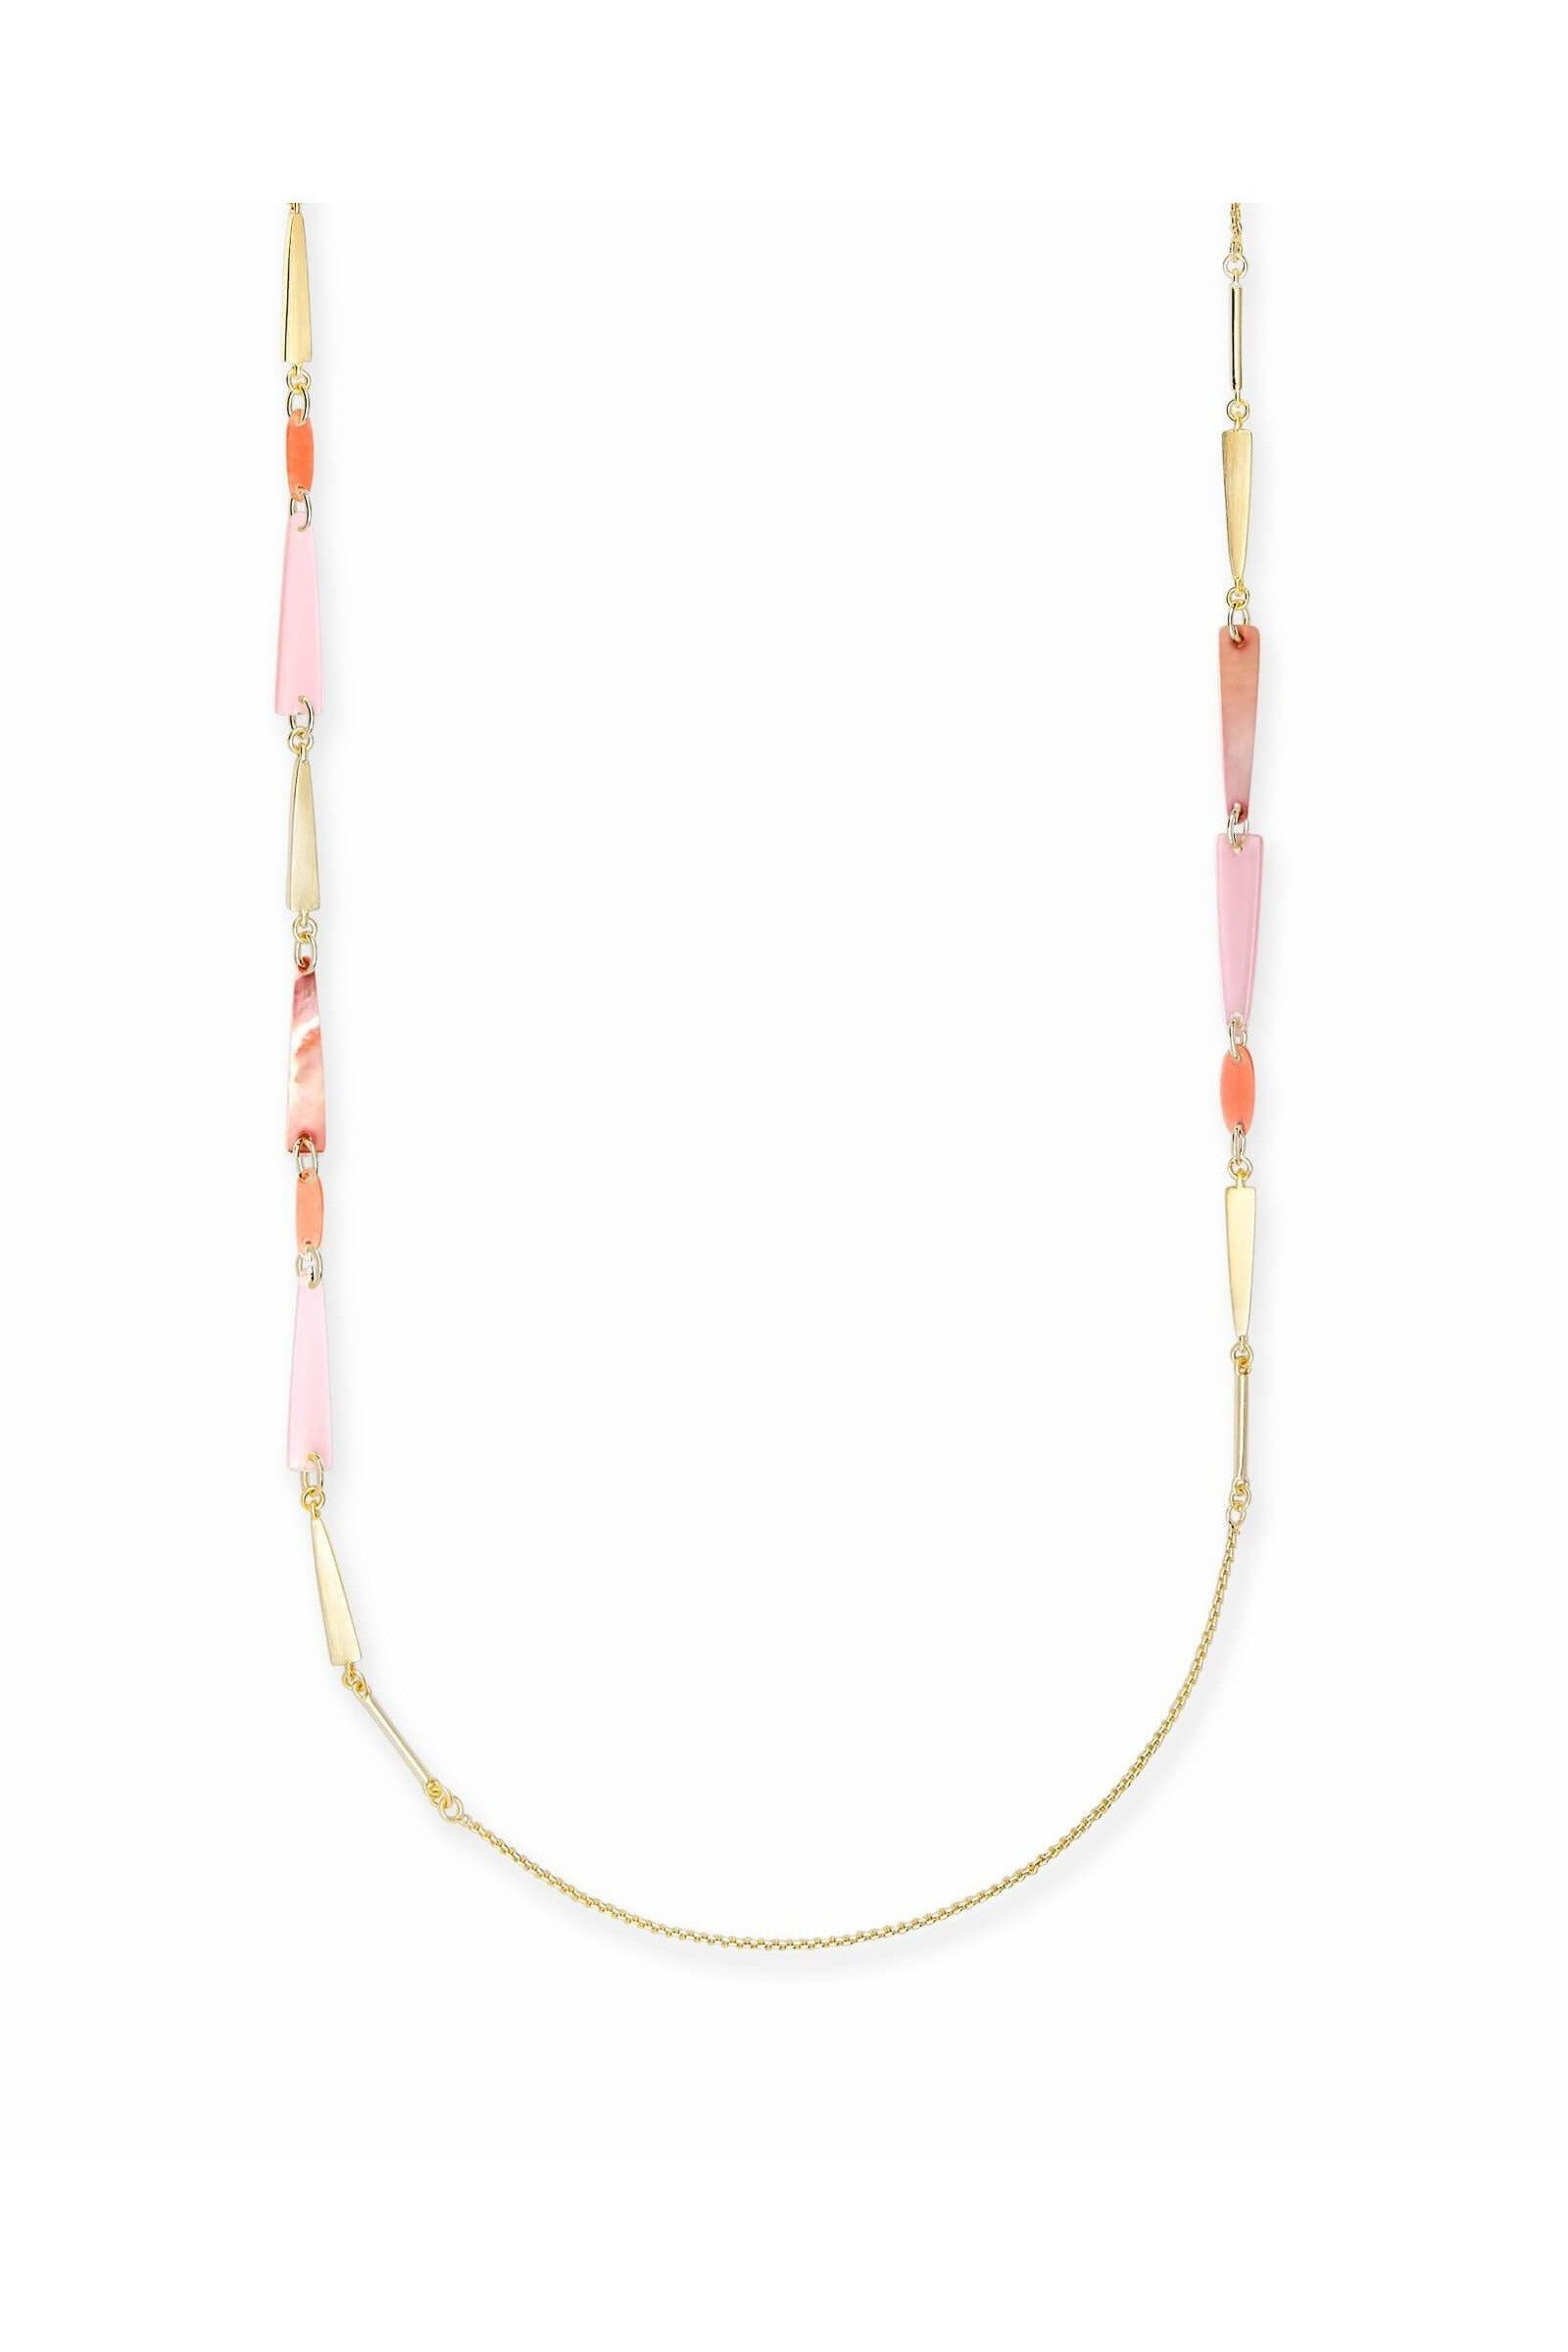 Aylin Gold Long Necklace in Peach Mix - RMC Boutique